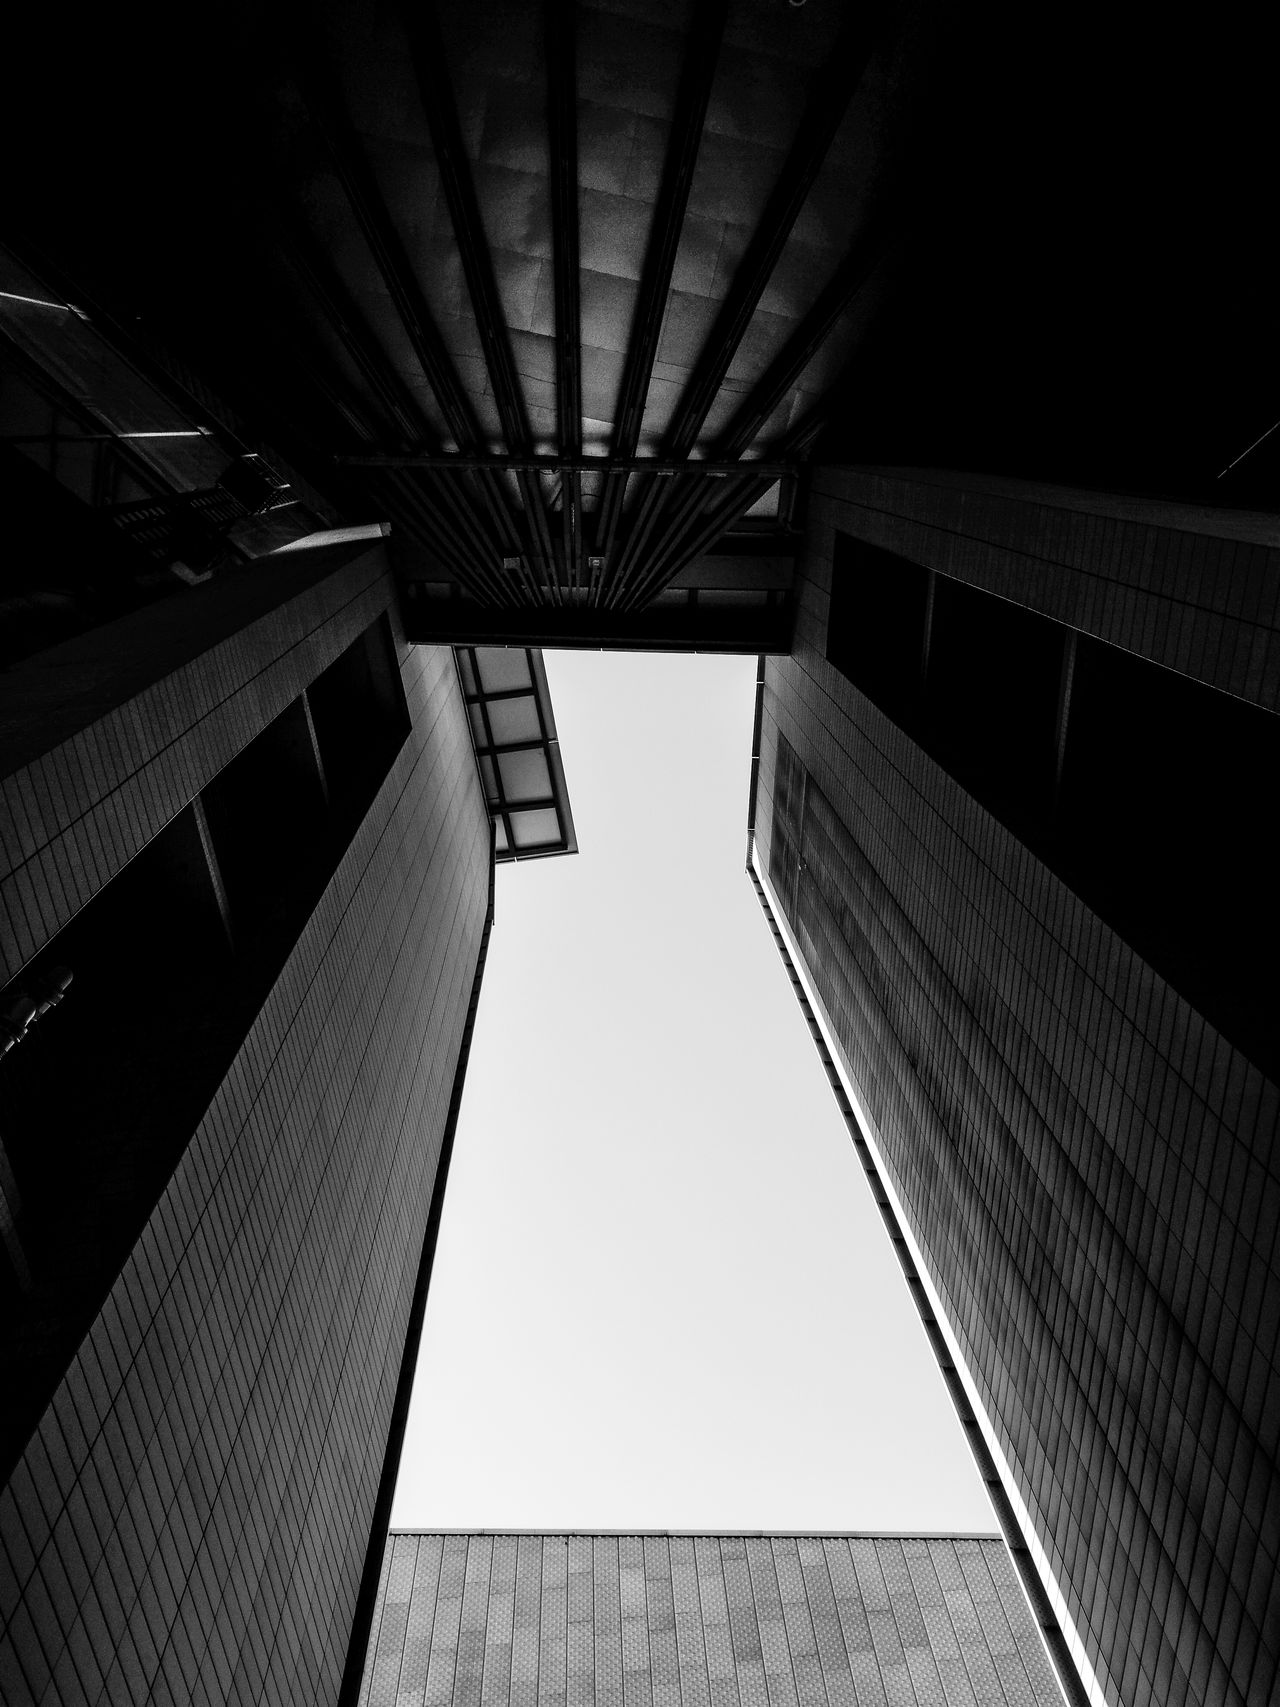 Monochromelookingup Architectural Detail Architectural Feature Architecture Architecture_bw Architecture_collection Architecturelovers Berlin Black & White Berlin Monochrome Berlin Schwarzweiss Black And White Berlin Building Exterior Built Structure City Huawei P9 Leica HuaweiP9 Huaweiphotography Low Angle View Modern Monochrome Monochrome Berlin Outdoors Sky